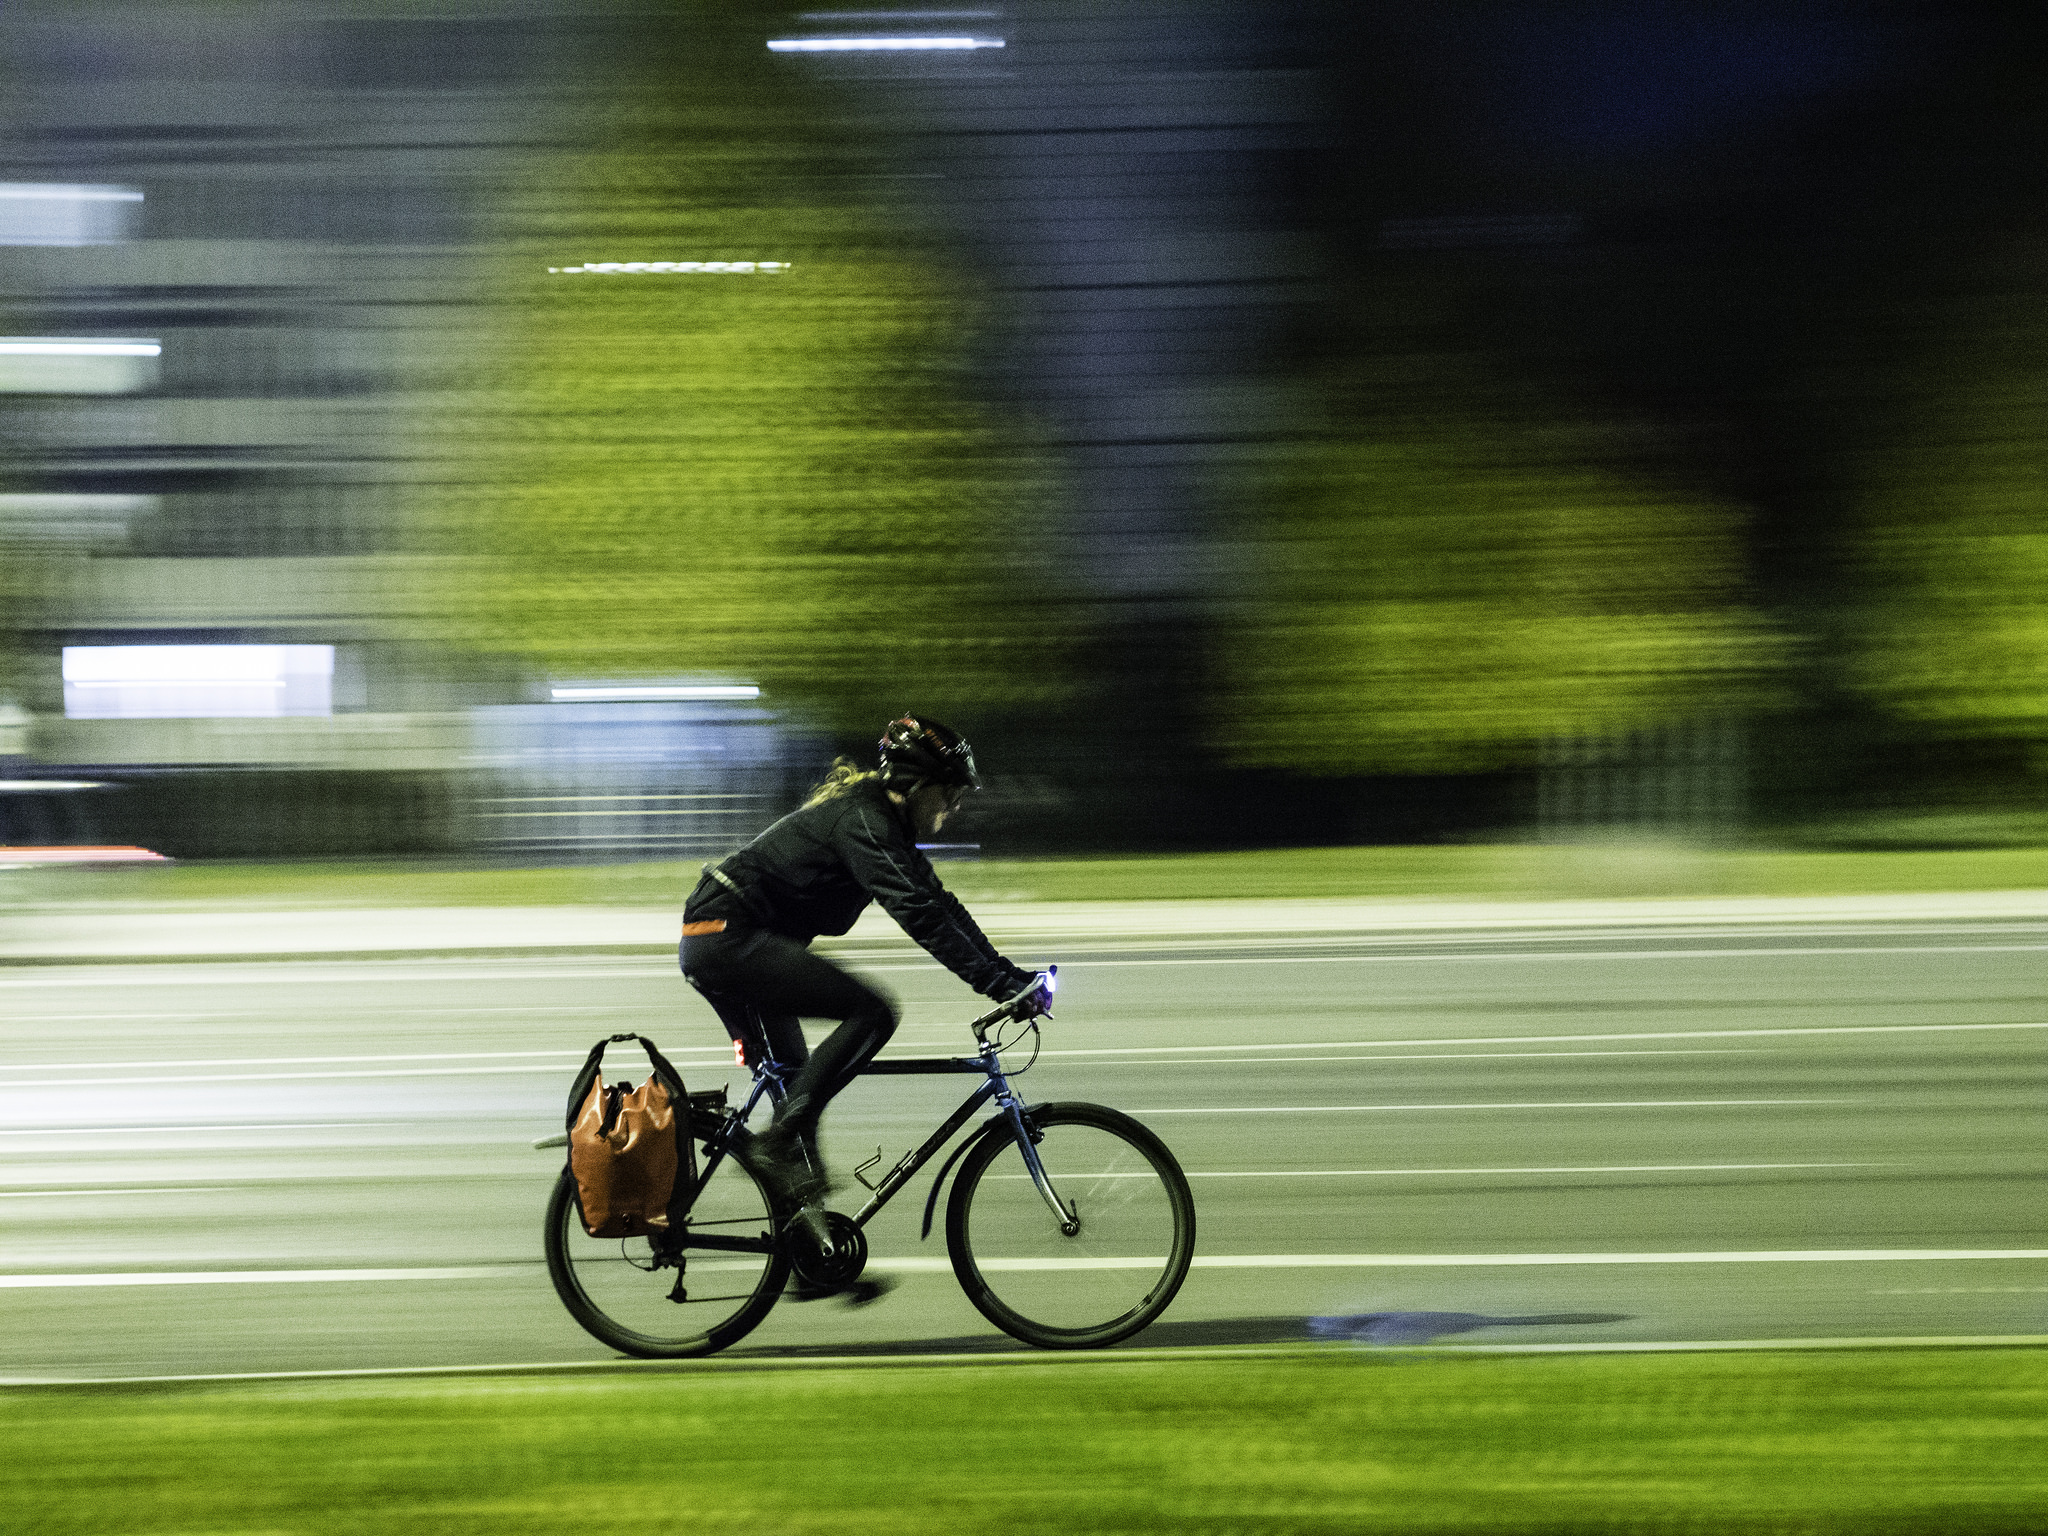 Man on Bike; Night